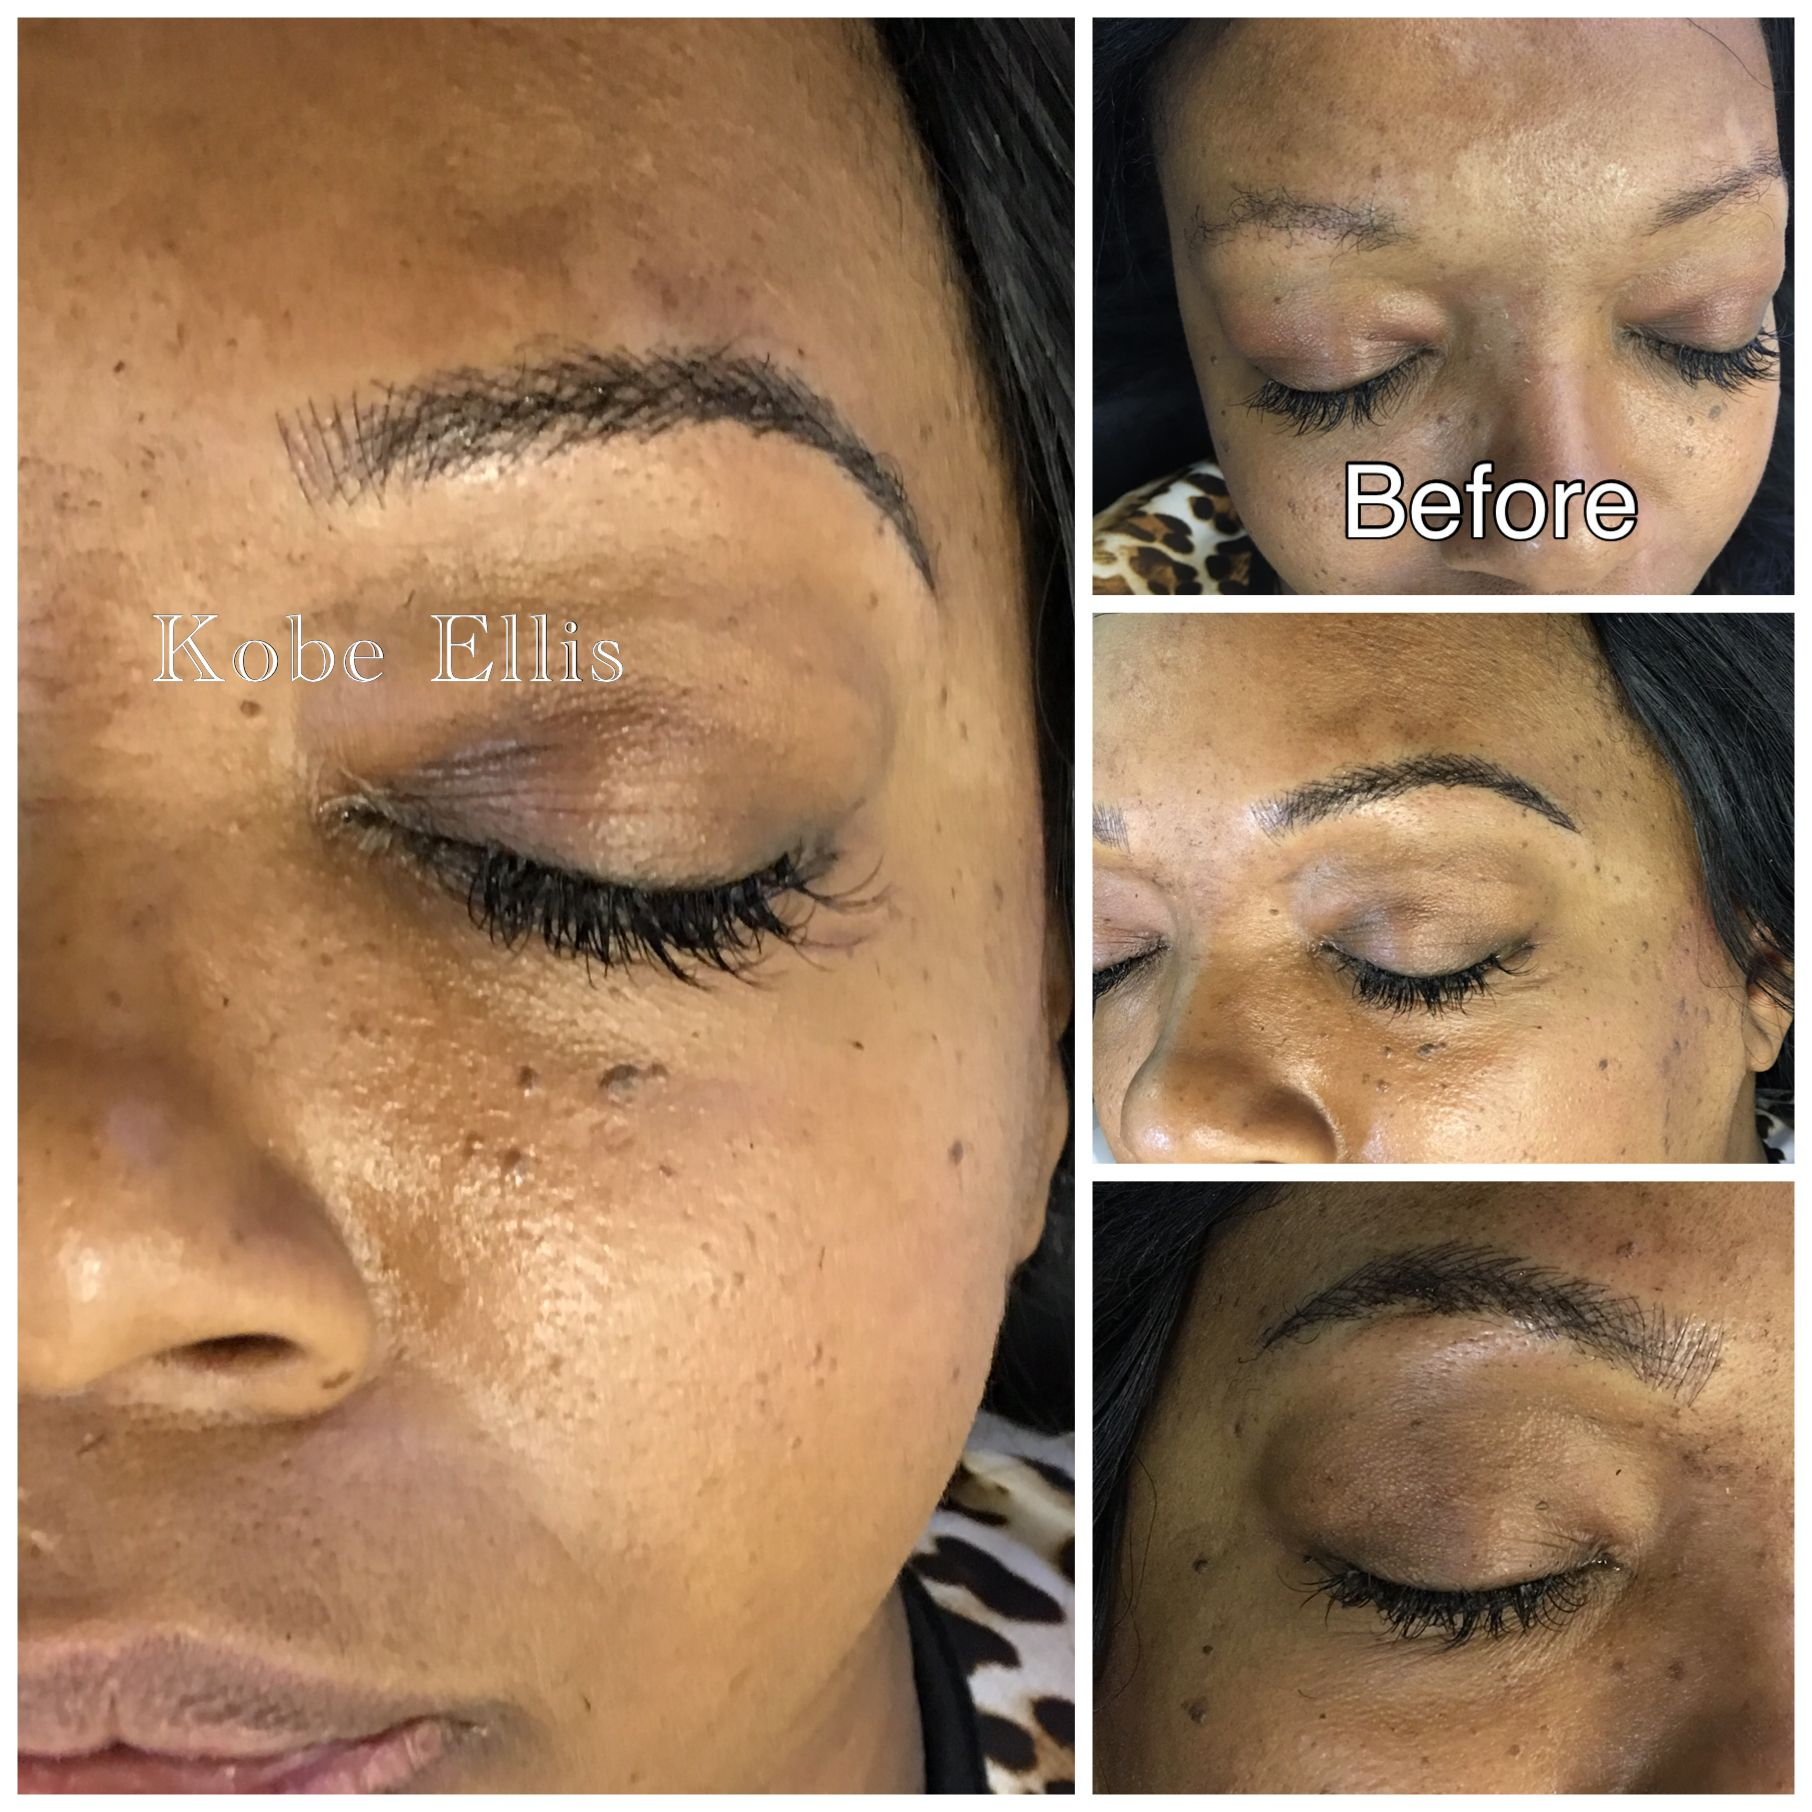 Kobe Ellis can use microblading or 3dbrowembroidery to